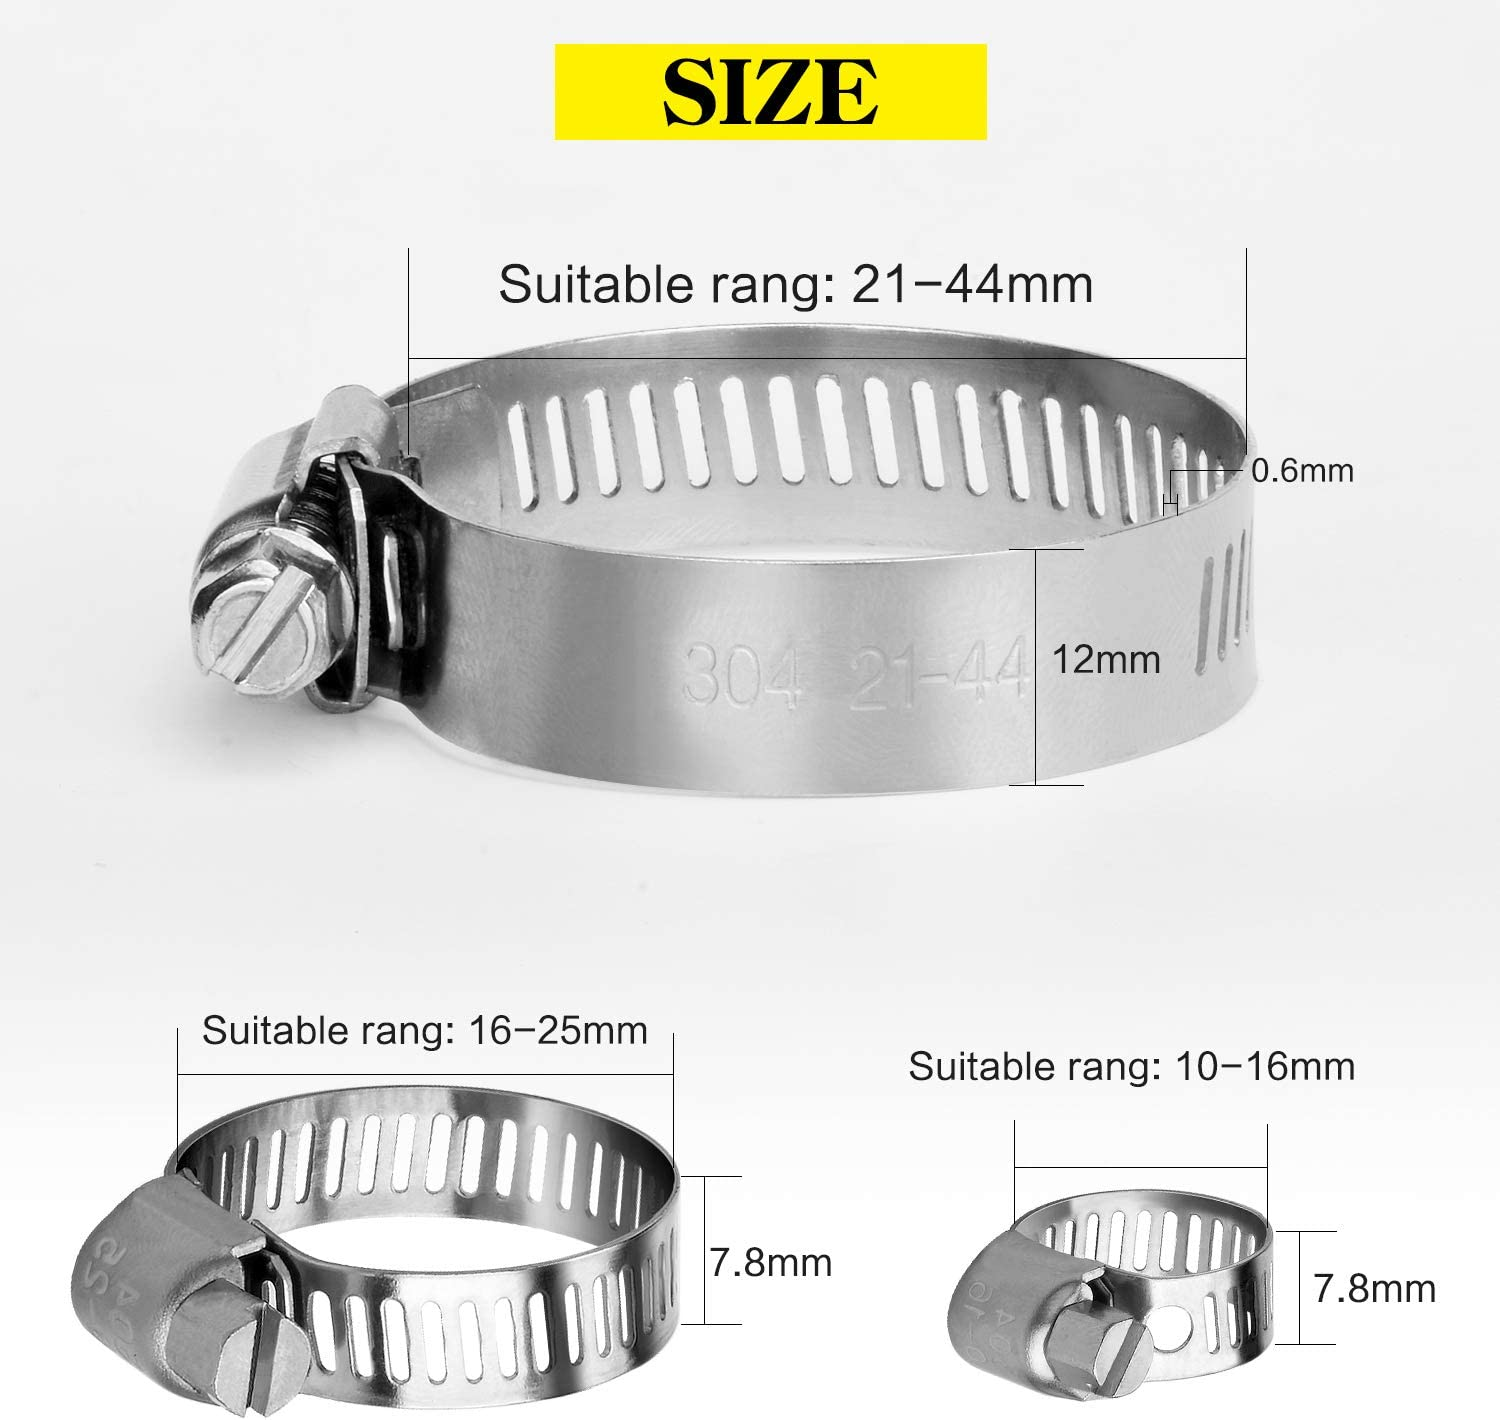 Astarye Hose Clips Adjustable Stainless Steel Hose Clamps Worm Drive Pipes Hose Clamps Clips,10 Pack 21-44 mm